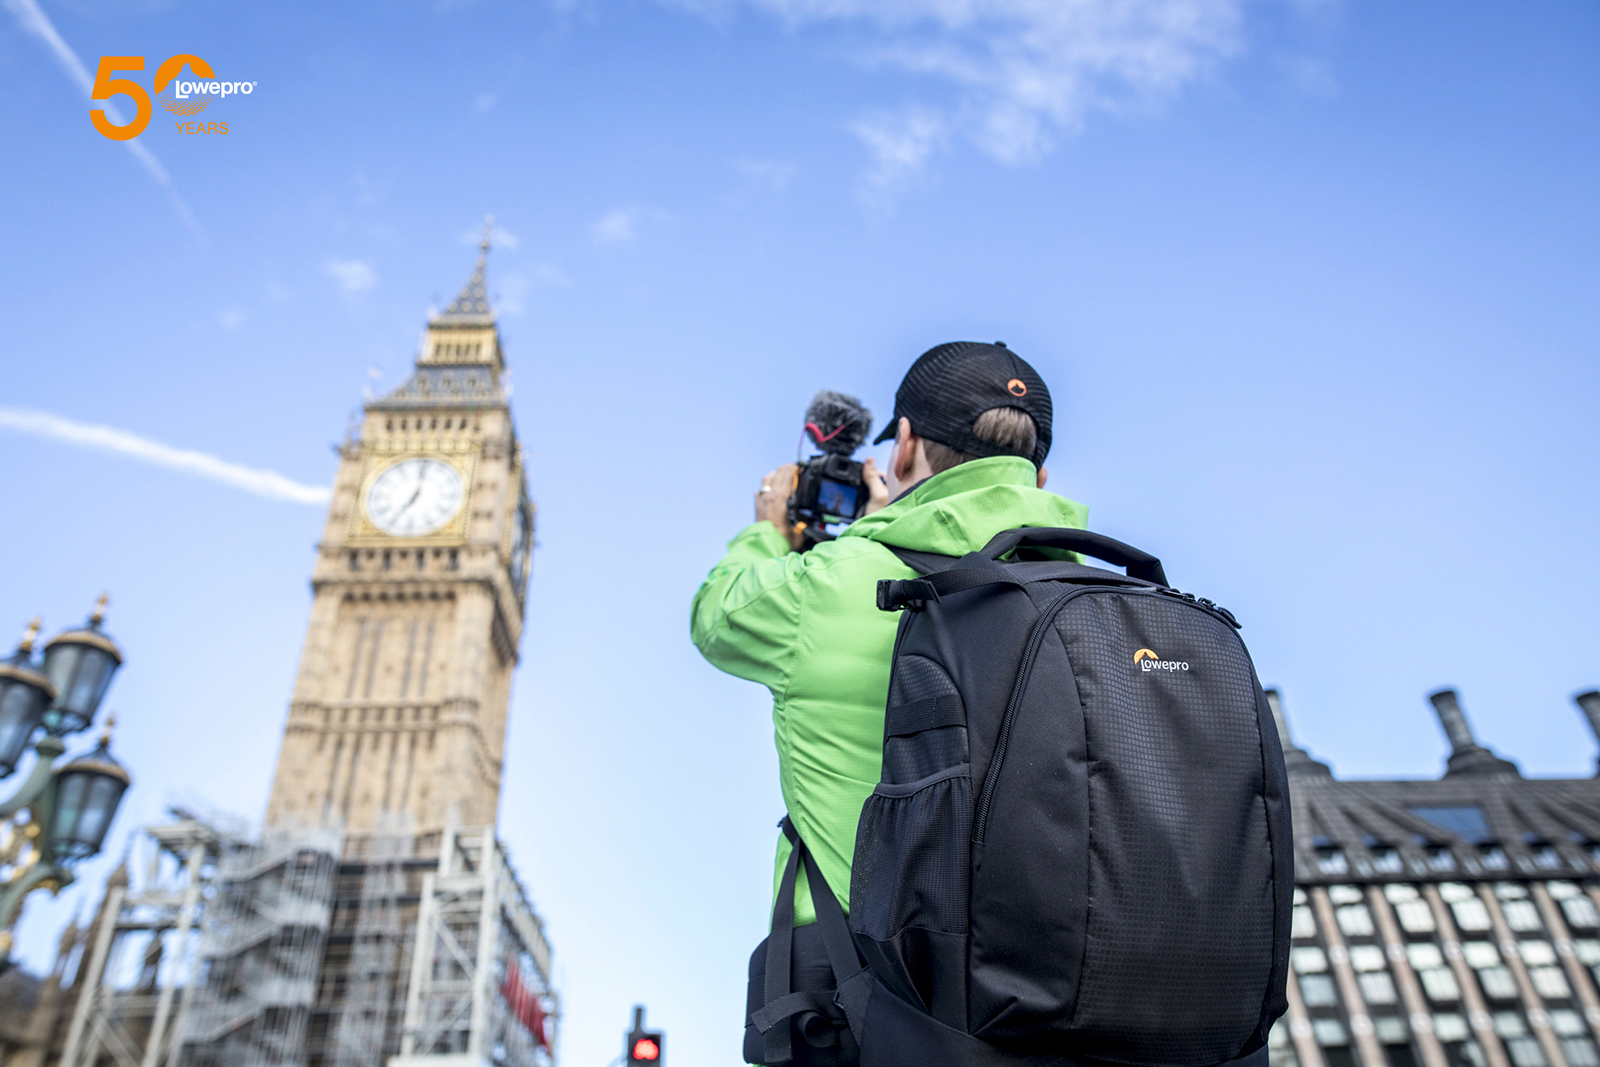 Lowepro Tours London